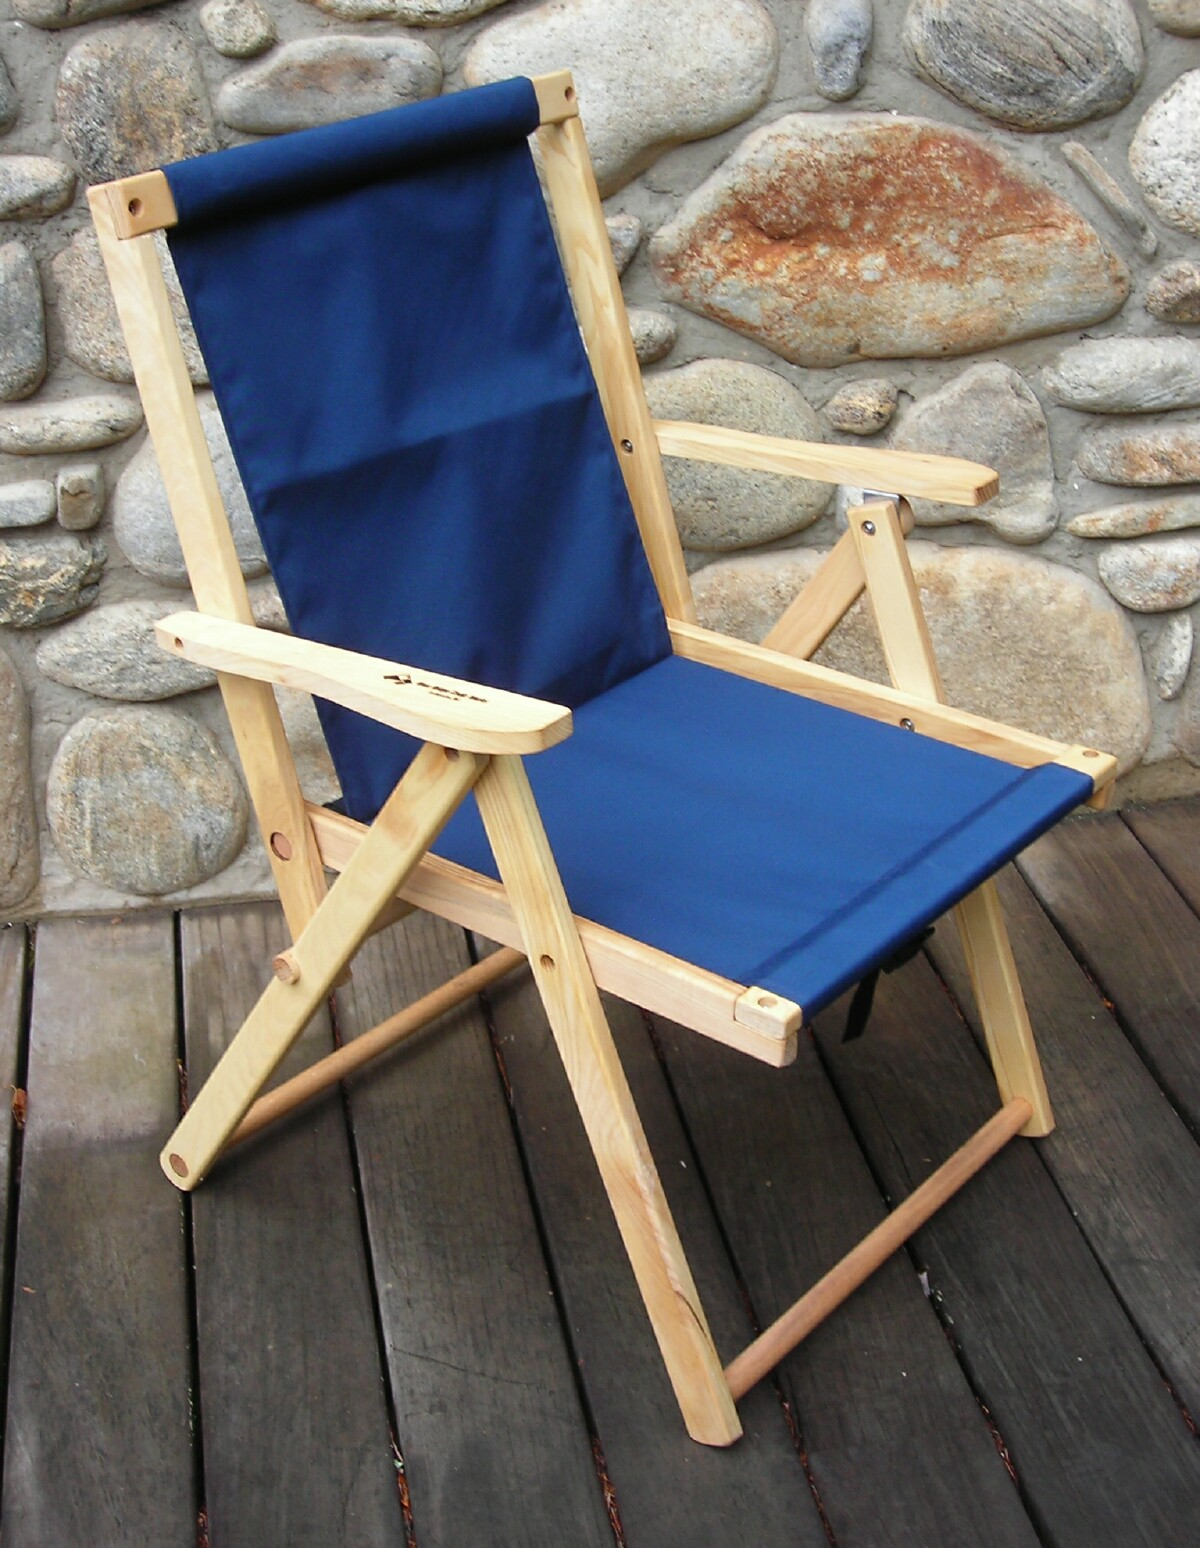 Wooden deck chairs - Wooden Deck Chairs